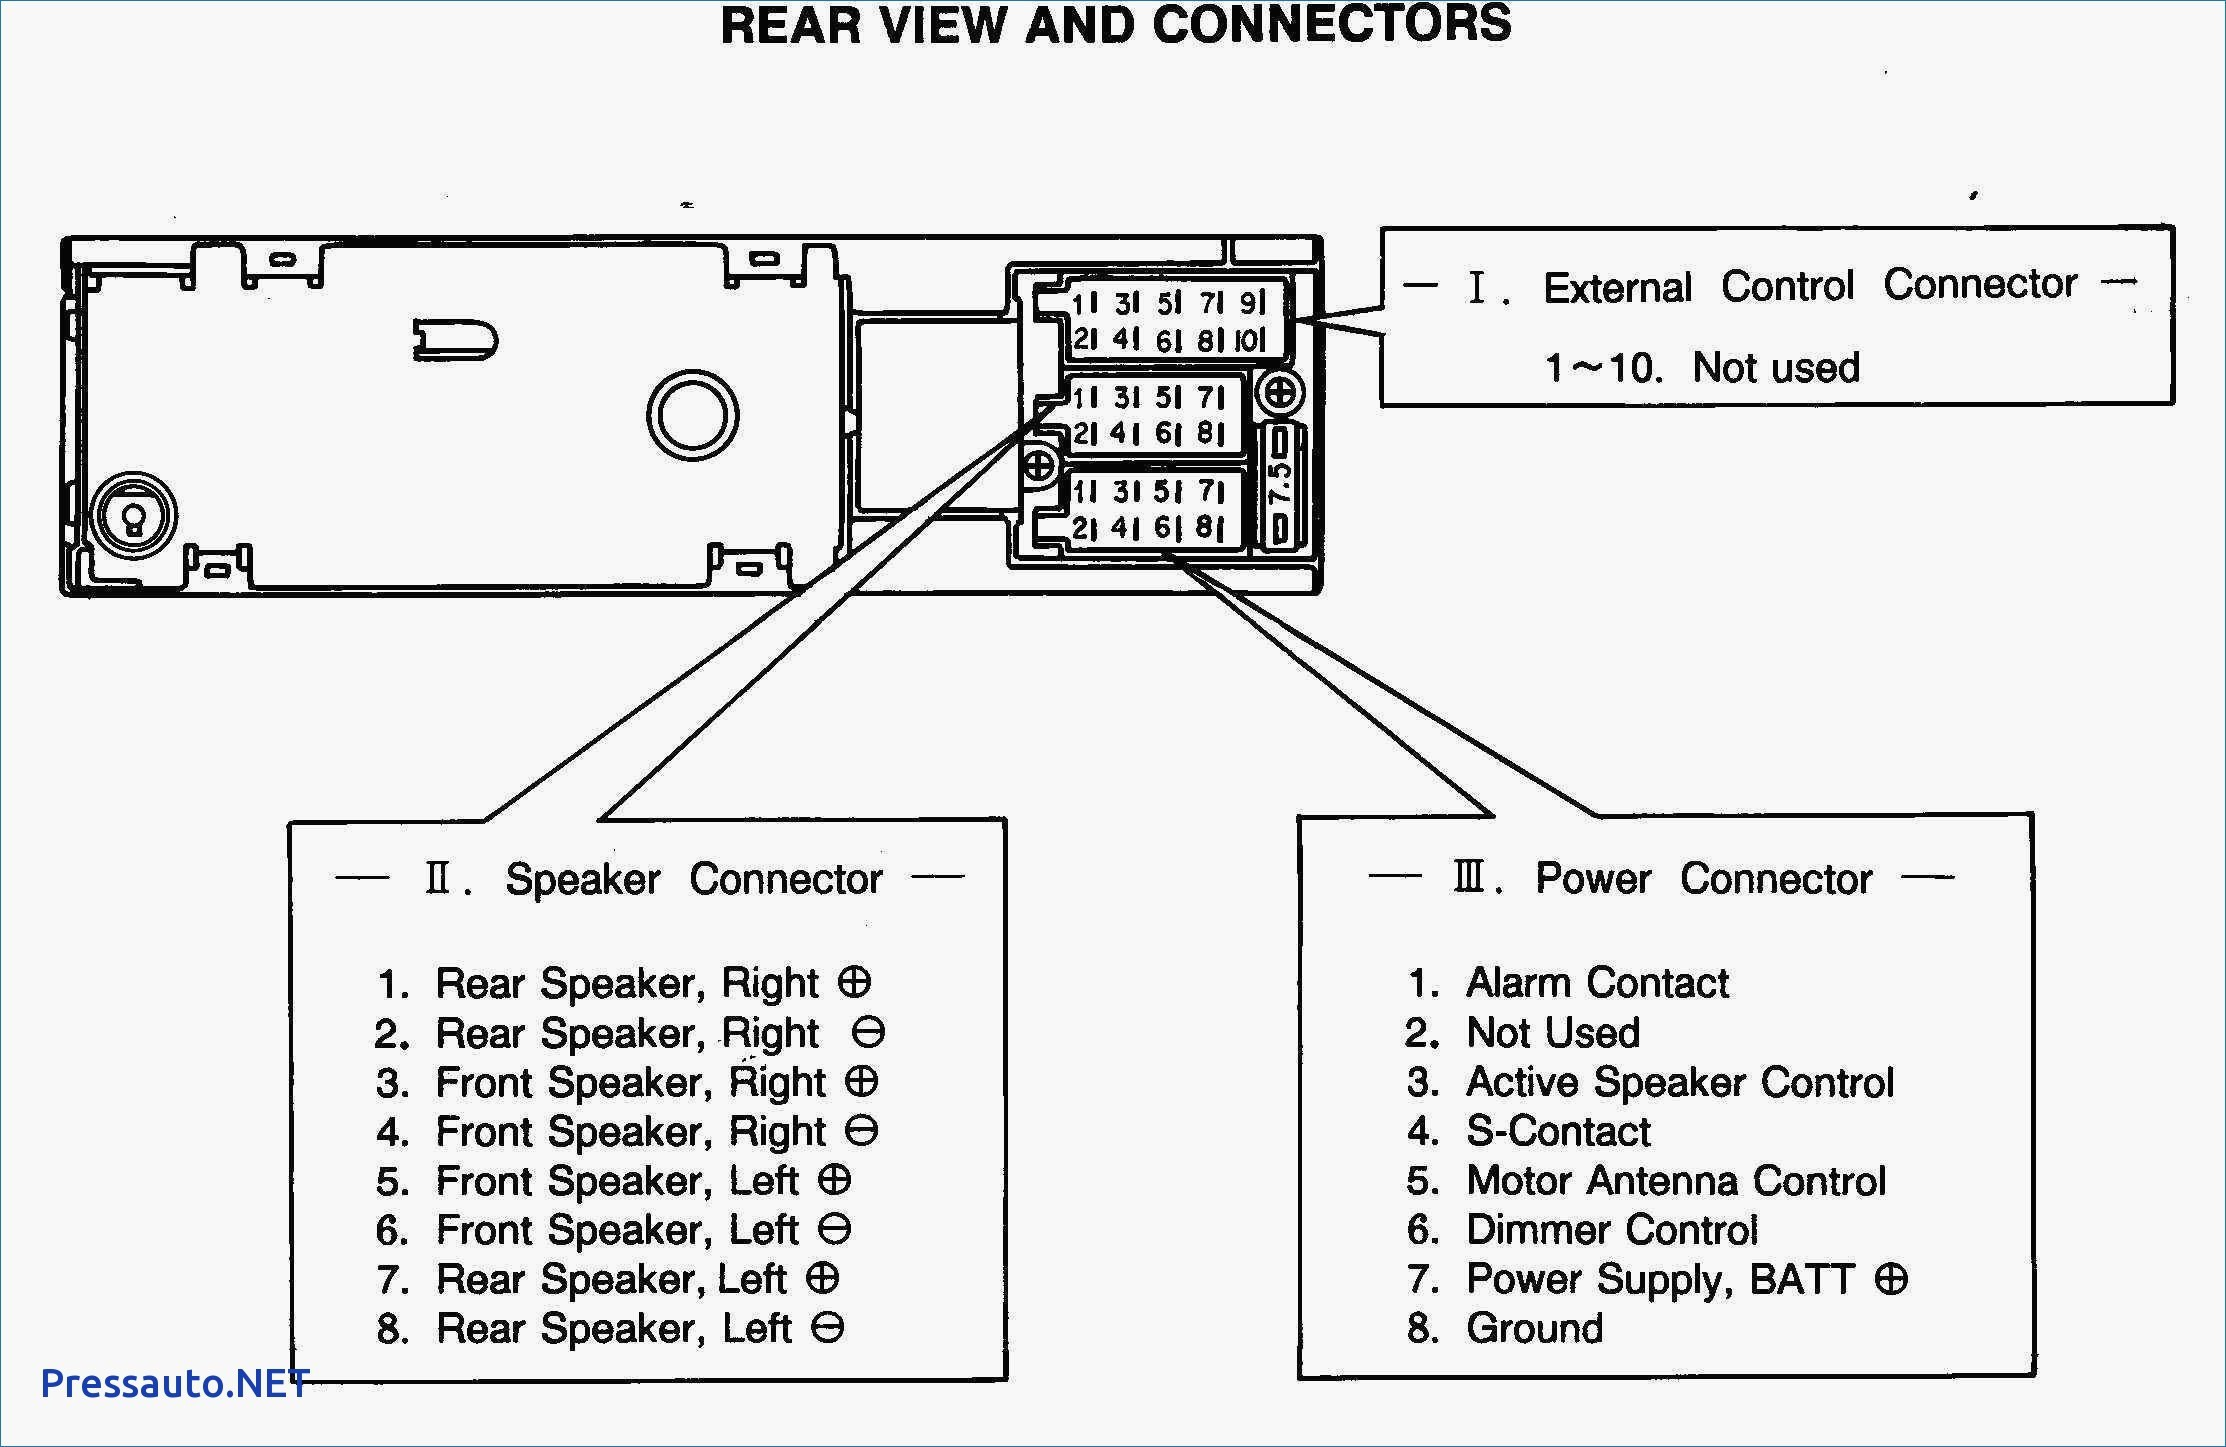 Wiring Diagram Of Car Diagrams Explained Printable Free Vehicle Pdf Audio Crossover Installation My Automotive Color Codes